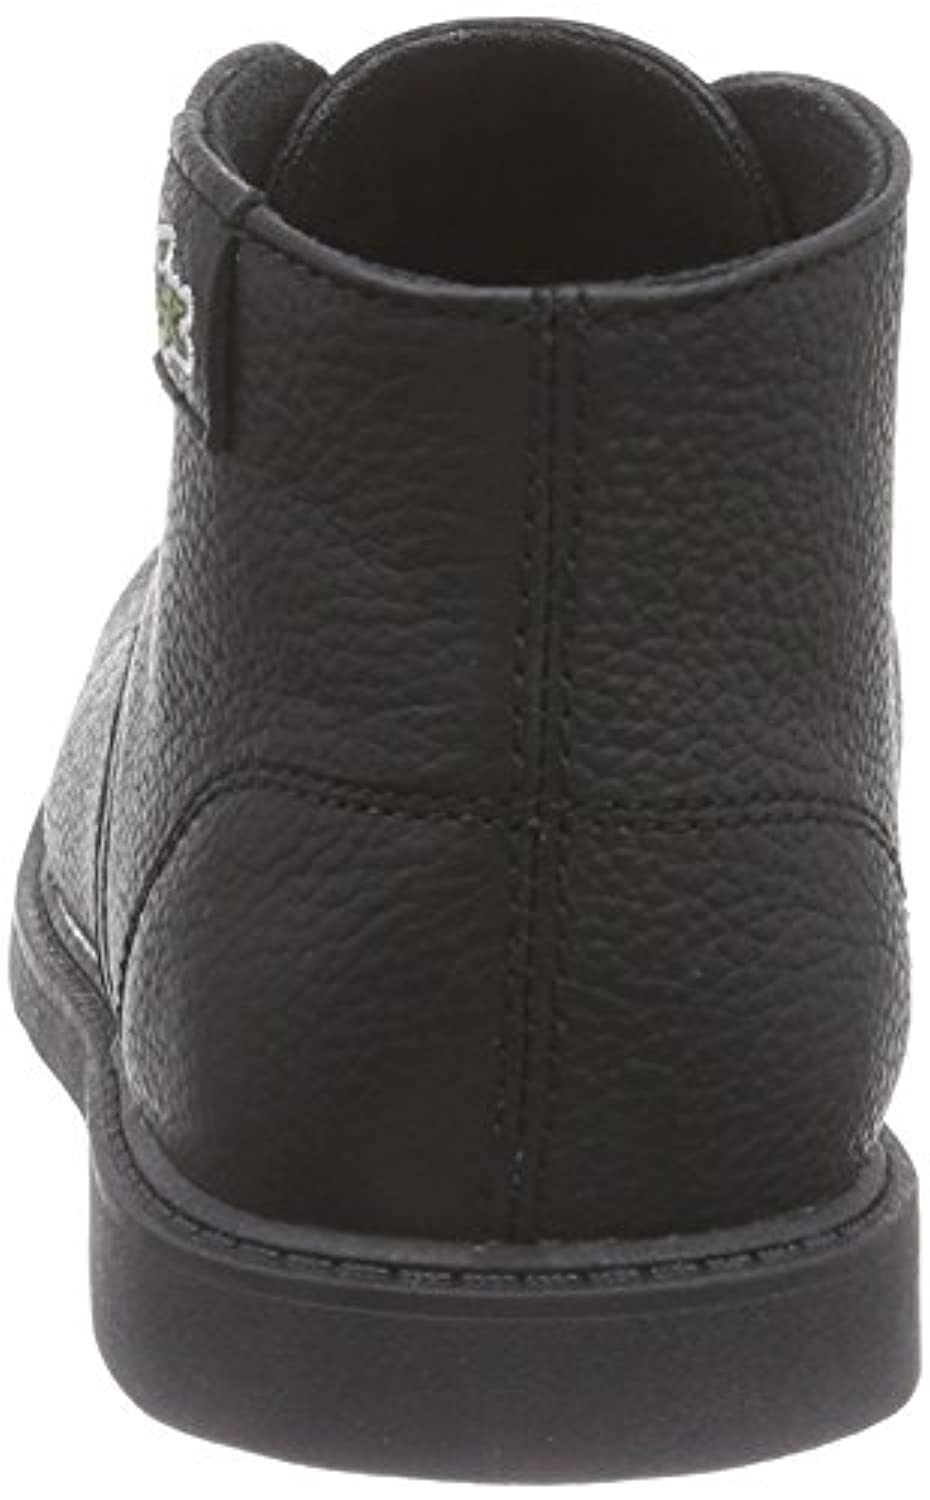 Lacoste Boys' SHERBROOK HI SB High-top Desert Boots Black Size: 1